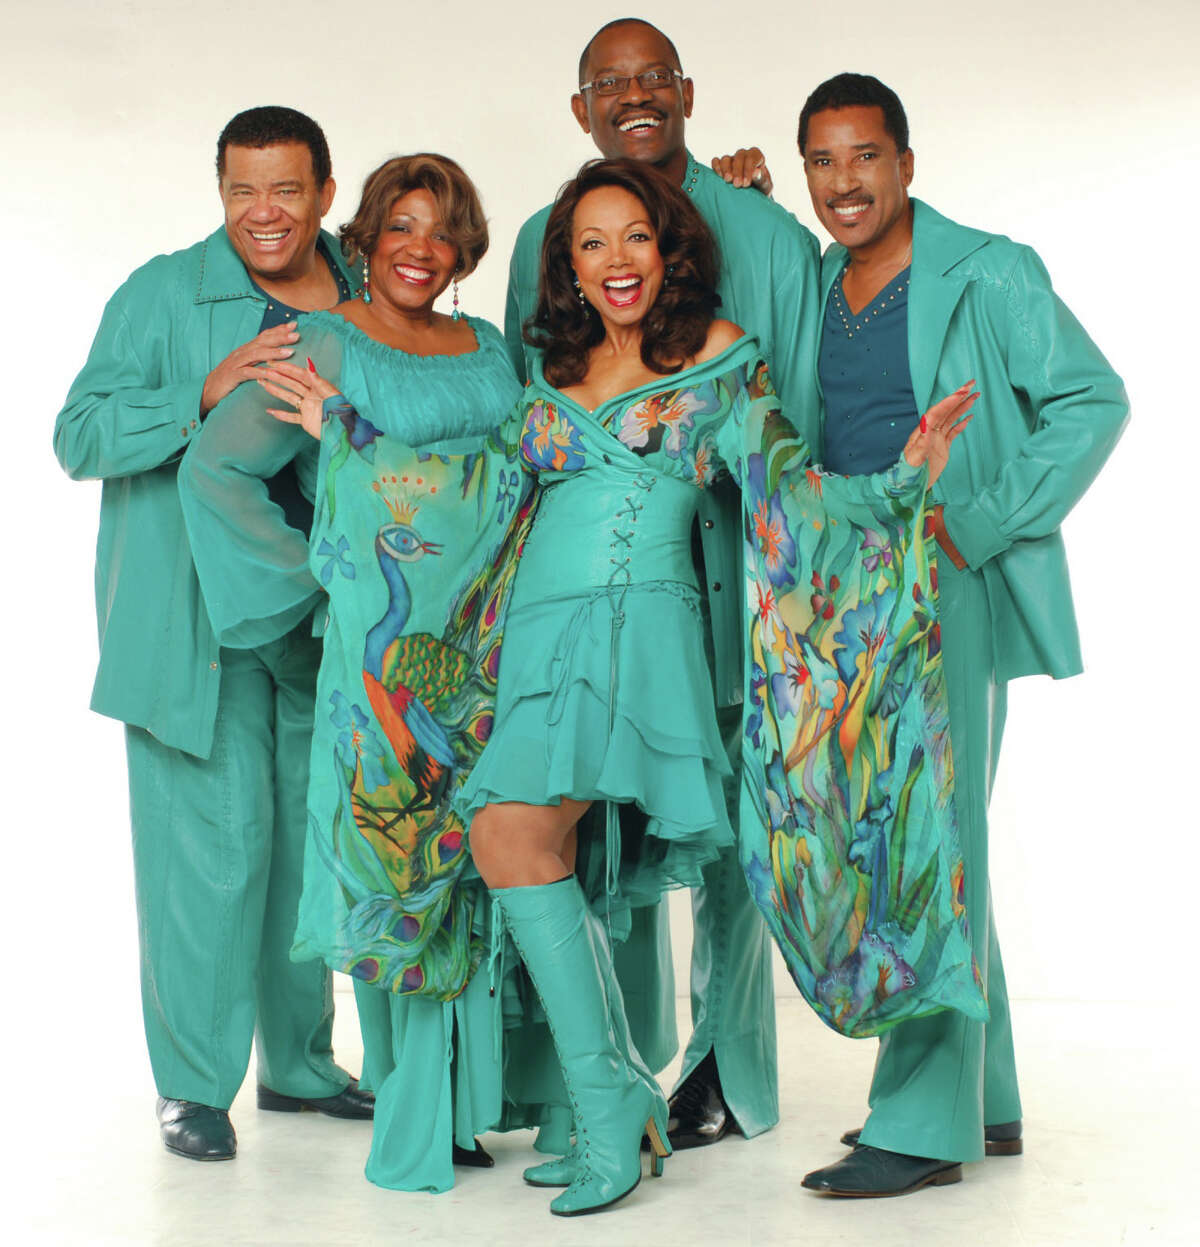 July 16 - The 5th Dimension The 5th Dimension became well-known during the late 1960s and early 1970s for hits like